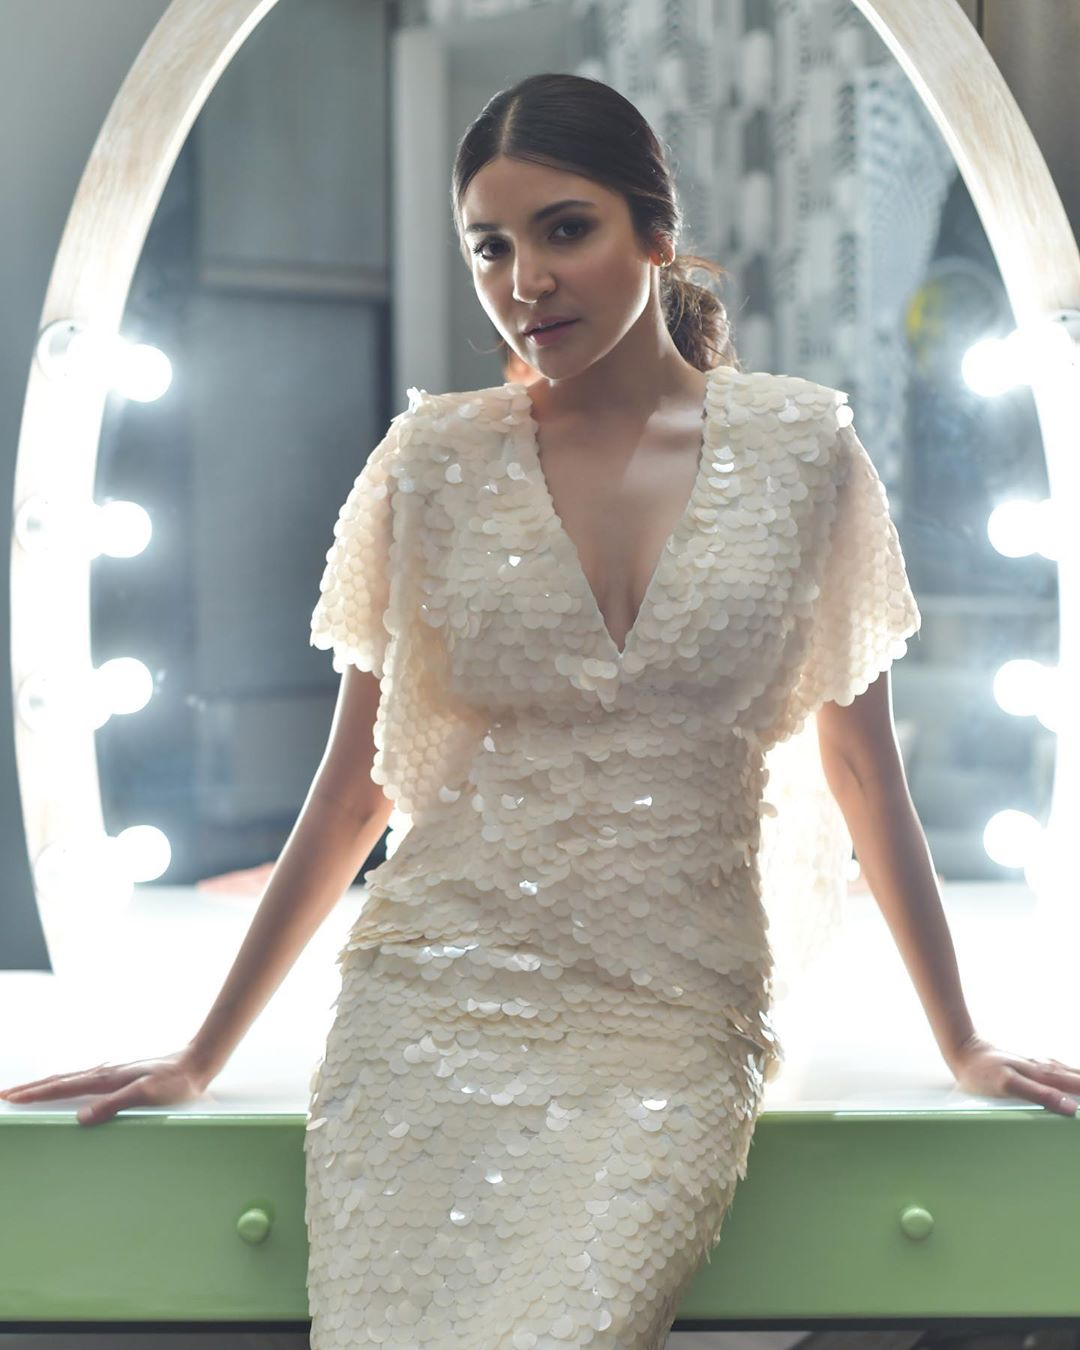 Anushka Sharma in a White Sequined Dress